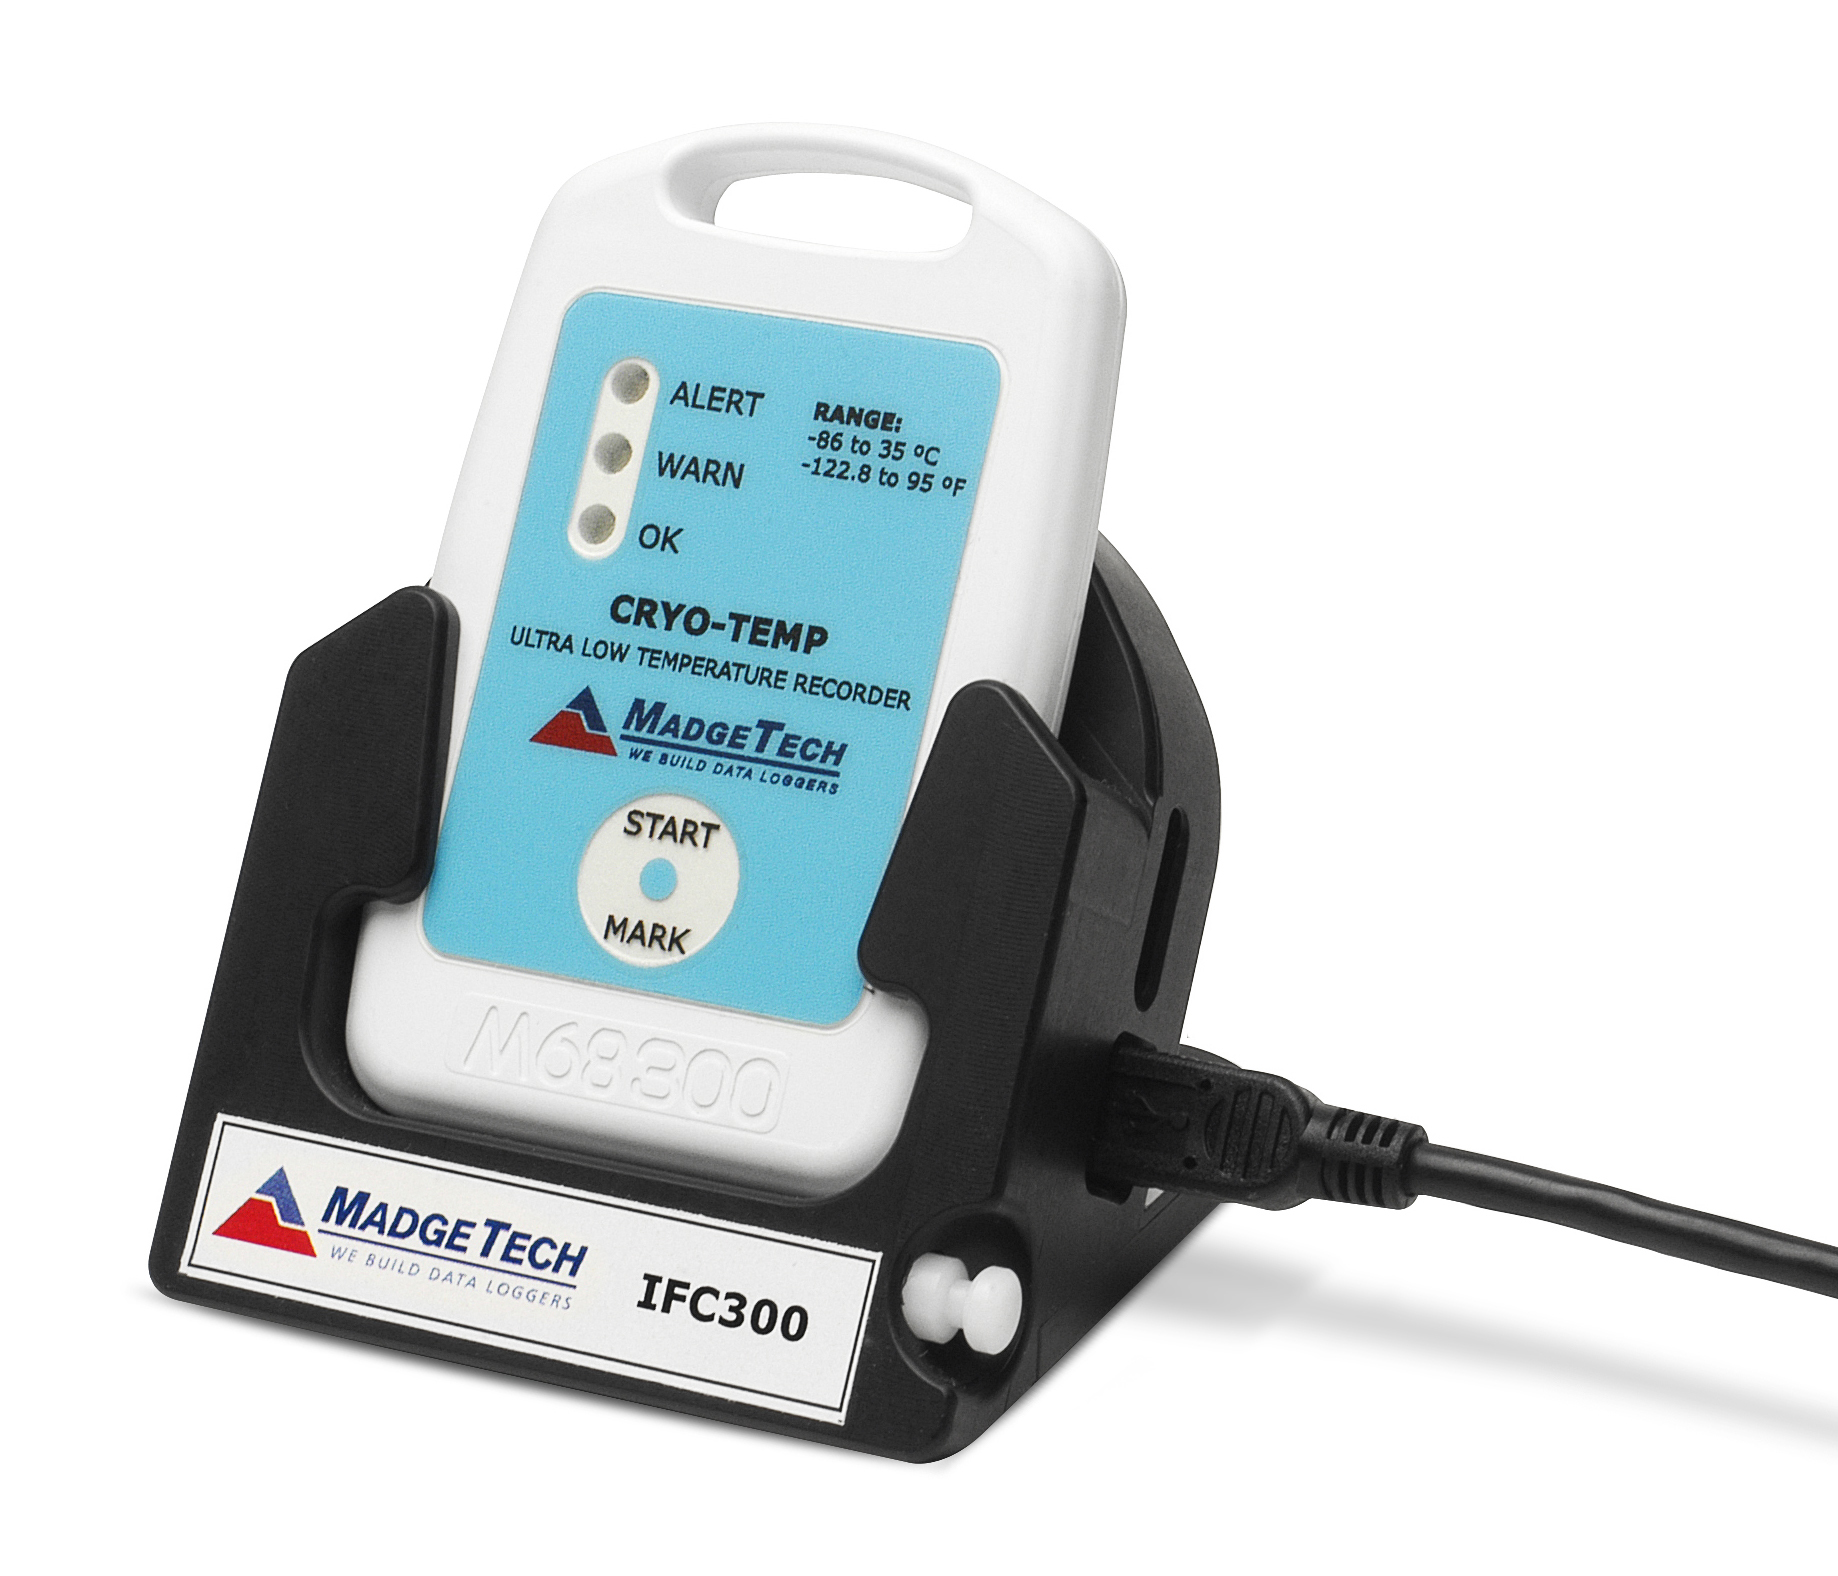 Cryo Temp ultra low temperature data logger